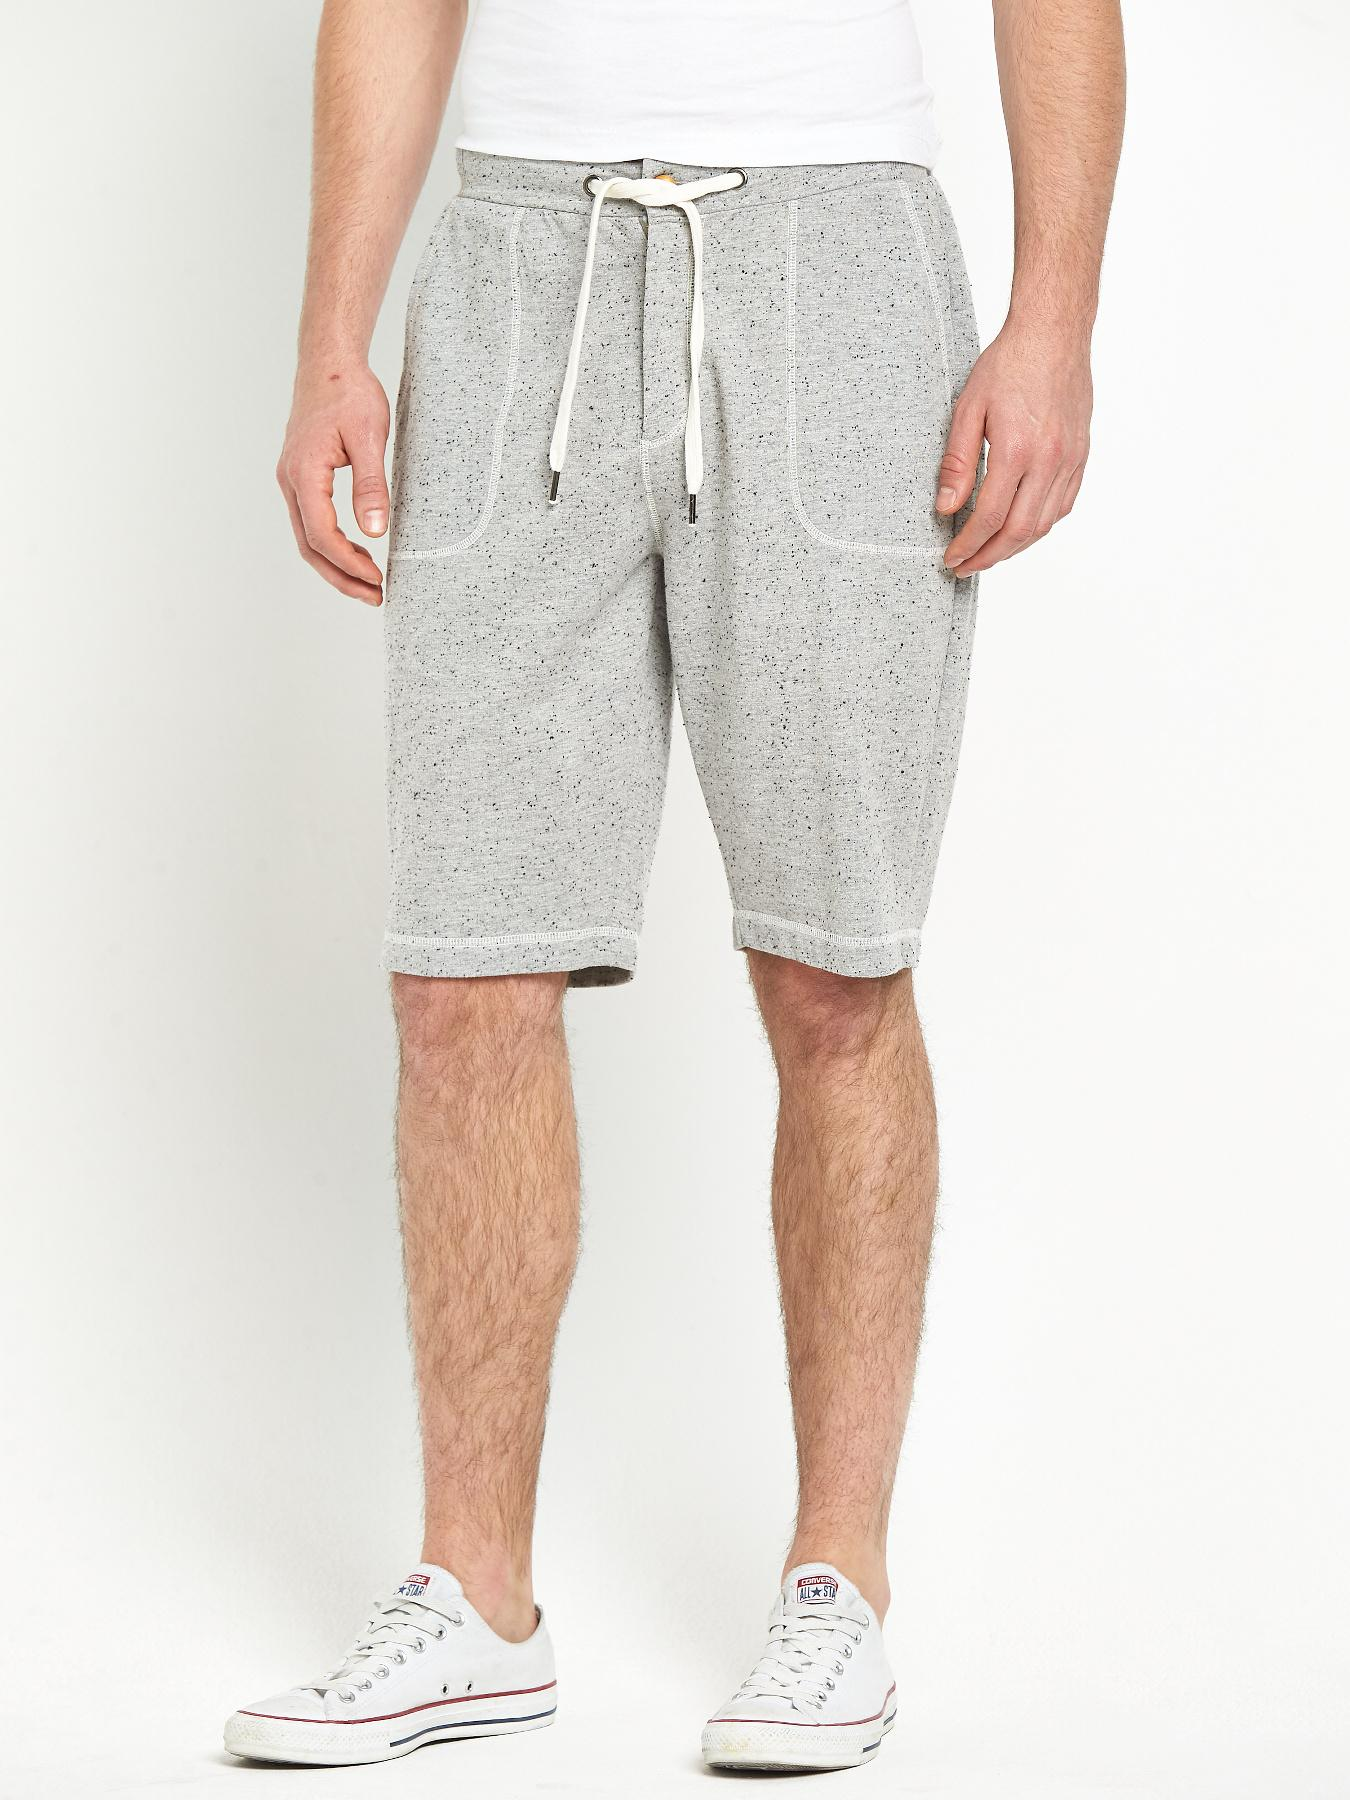 Mens Fleece Jogger Shorts, Grey at Littlewoods